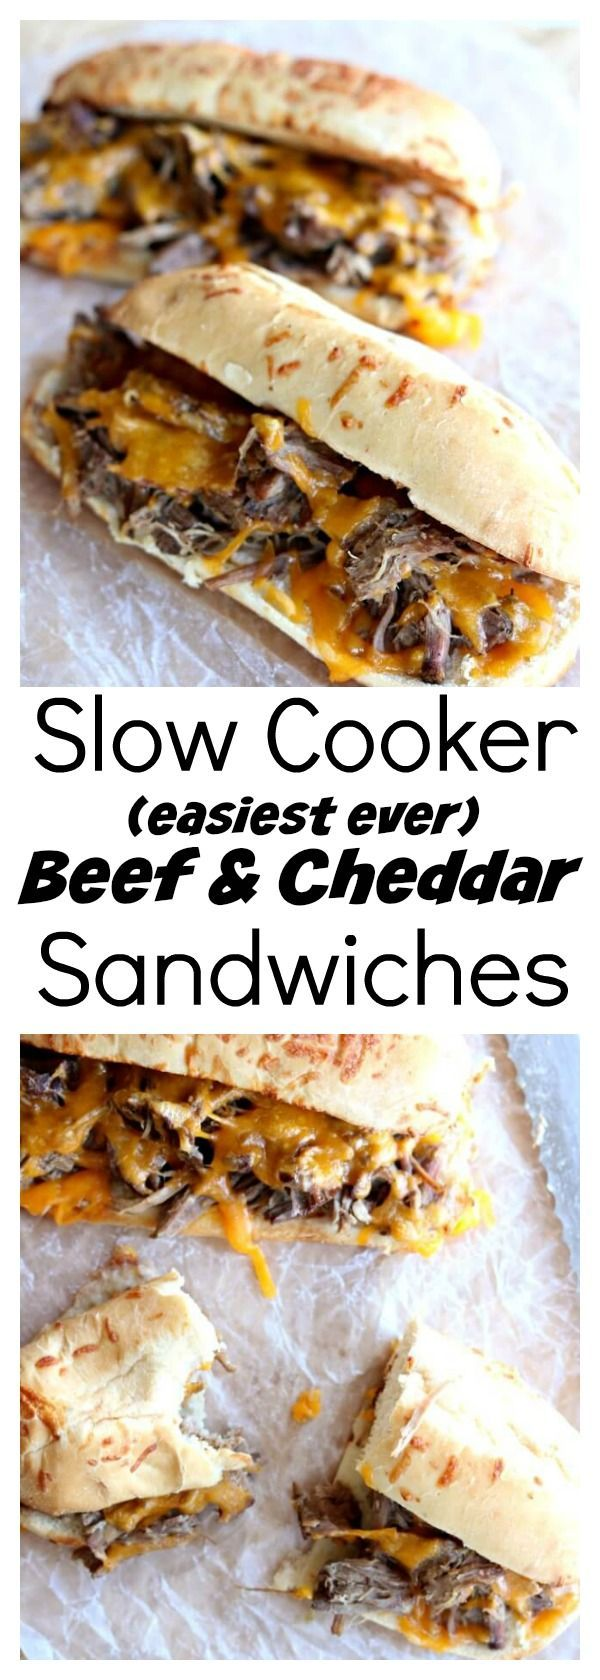 Cooker Beef and Cheddar Sandwiches–the easiest recipe to make ever. With only 4 ingredients total (beef, onion soup mix, cheddar and sandwich buns) you may be thinking that this recipe is just too easy to taste good. Well, you're wrong  The flavor is amazing and your family will be asking for seconds.